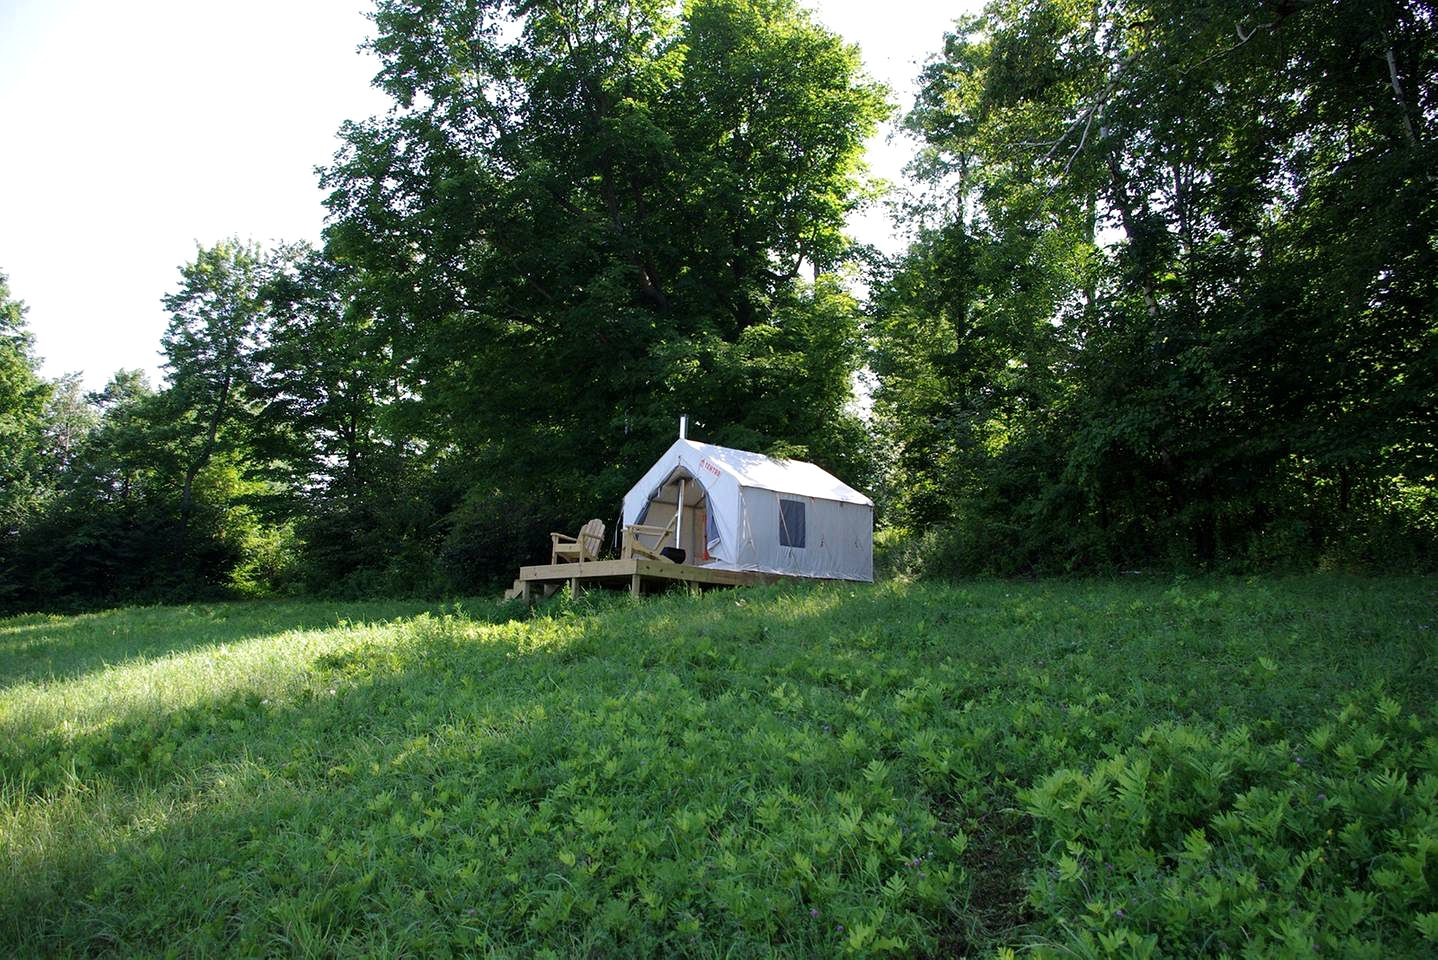 Tented Cabins (Millerton, New York, United States)